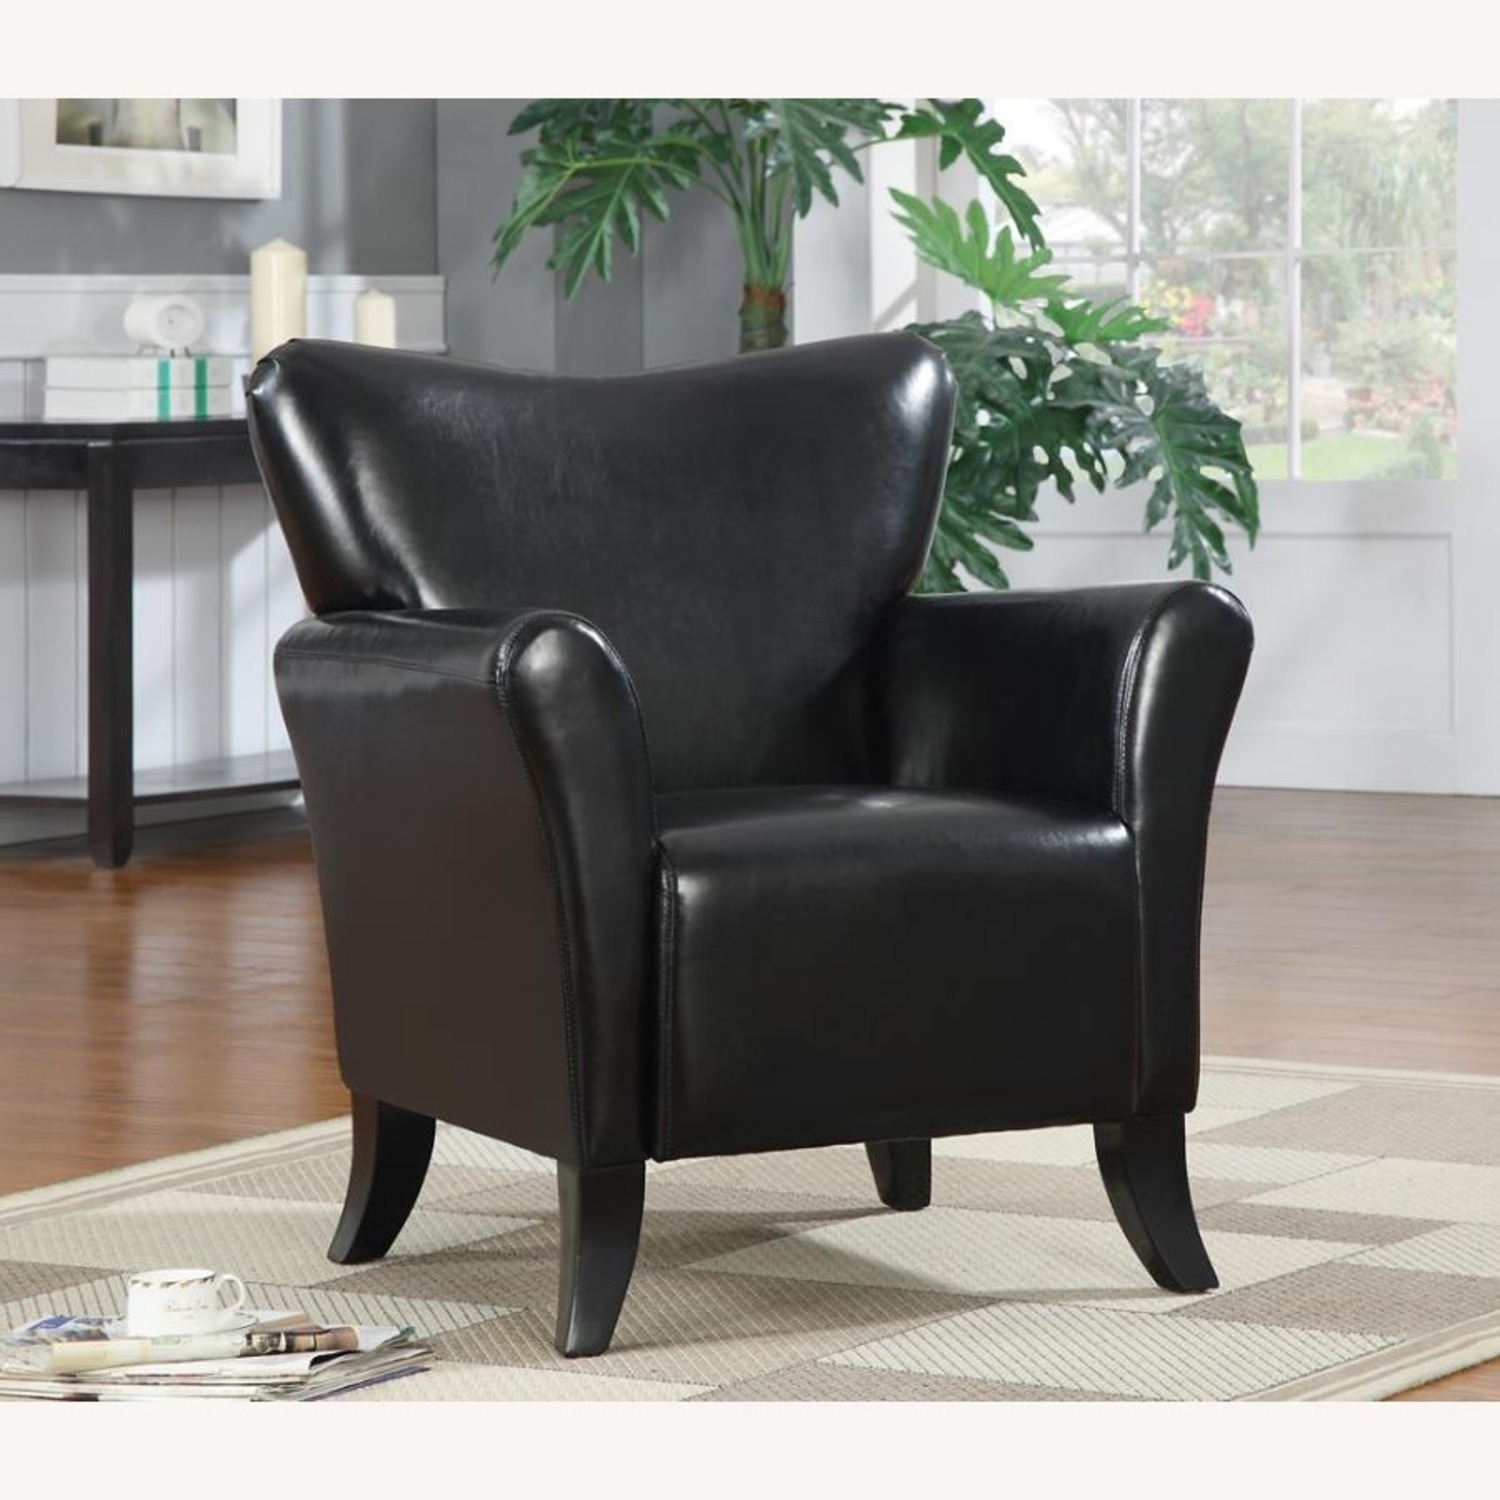 Styling Accent Chair In Black Leatherette - image-2